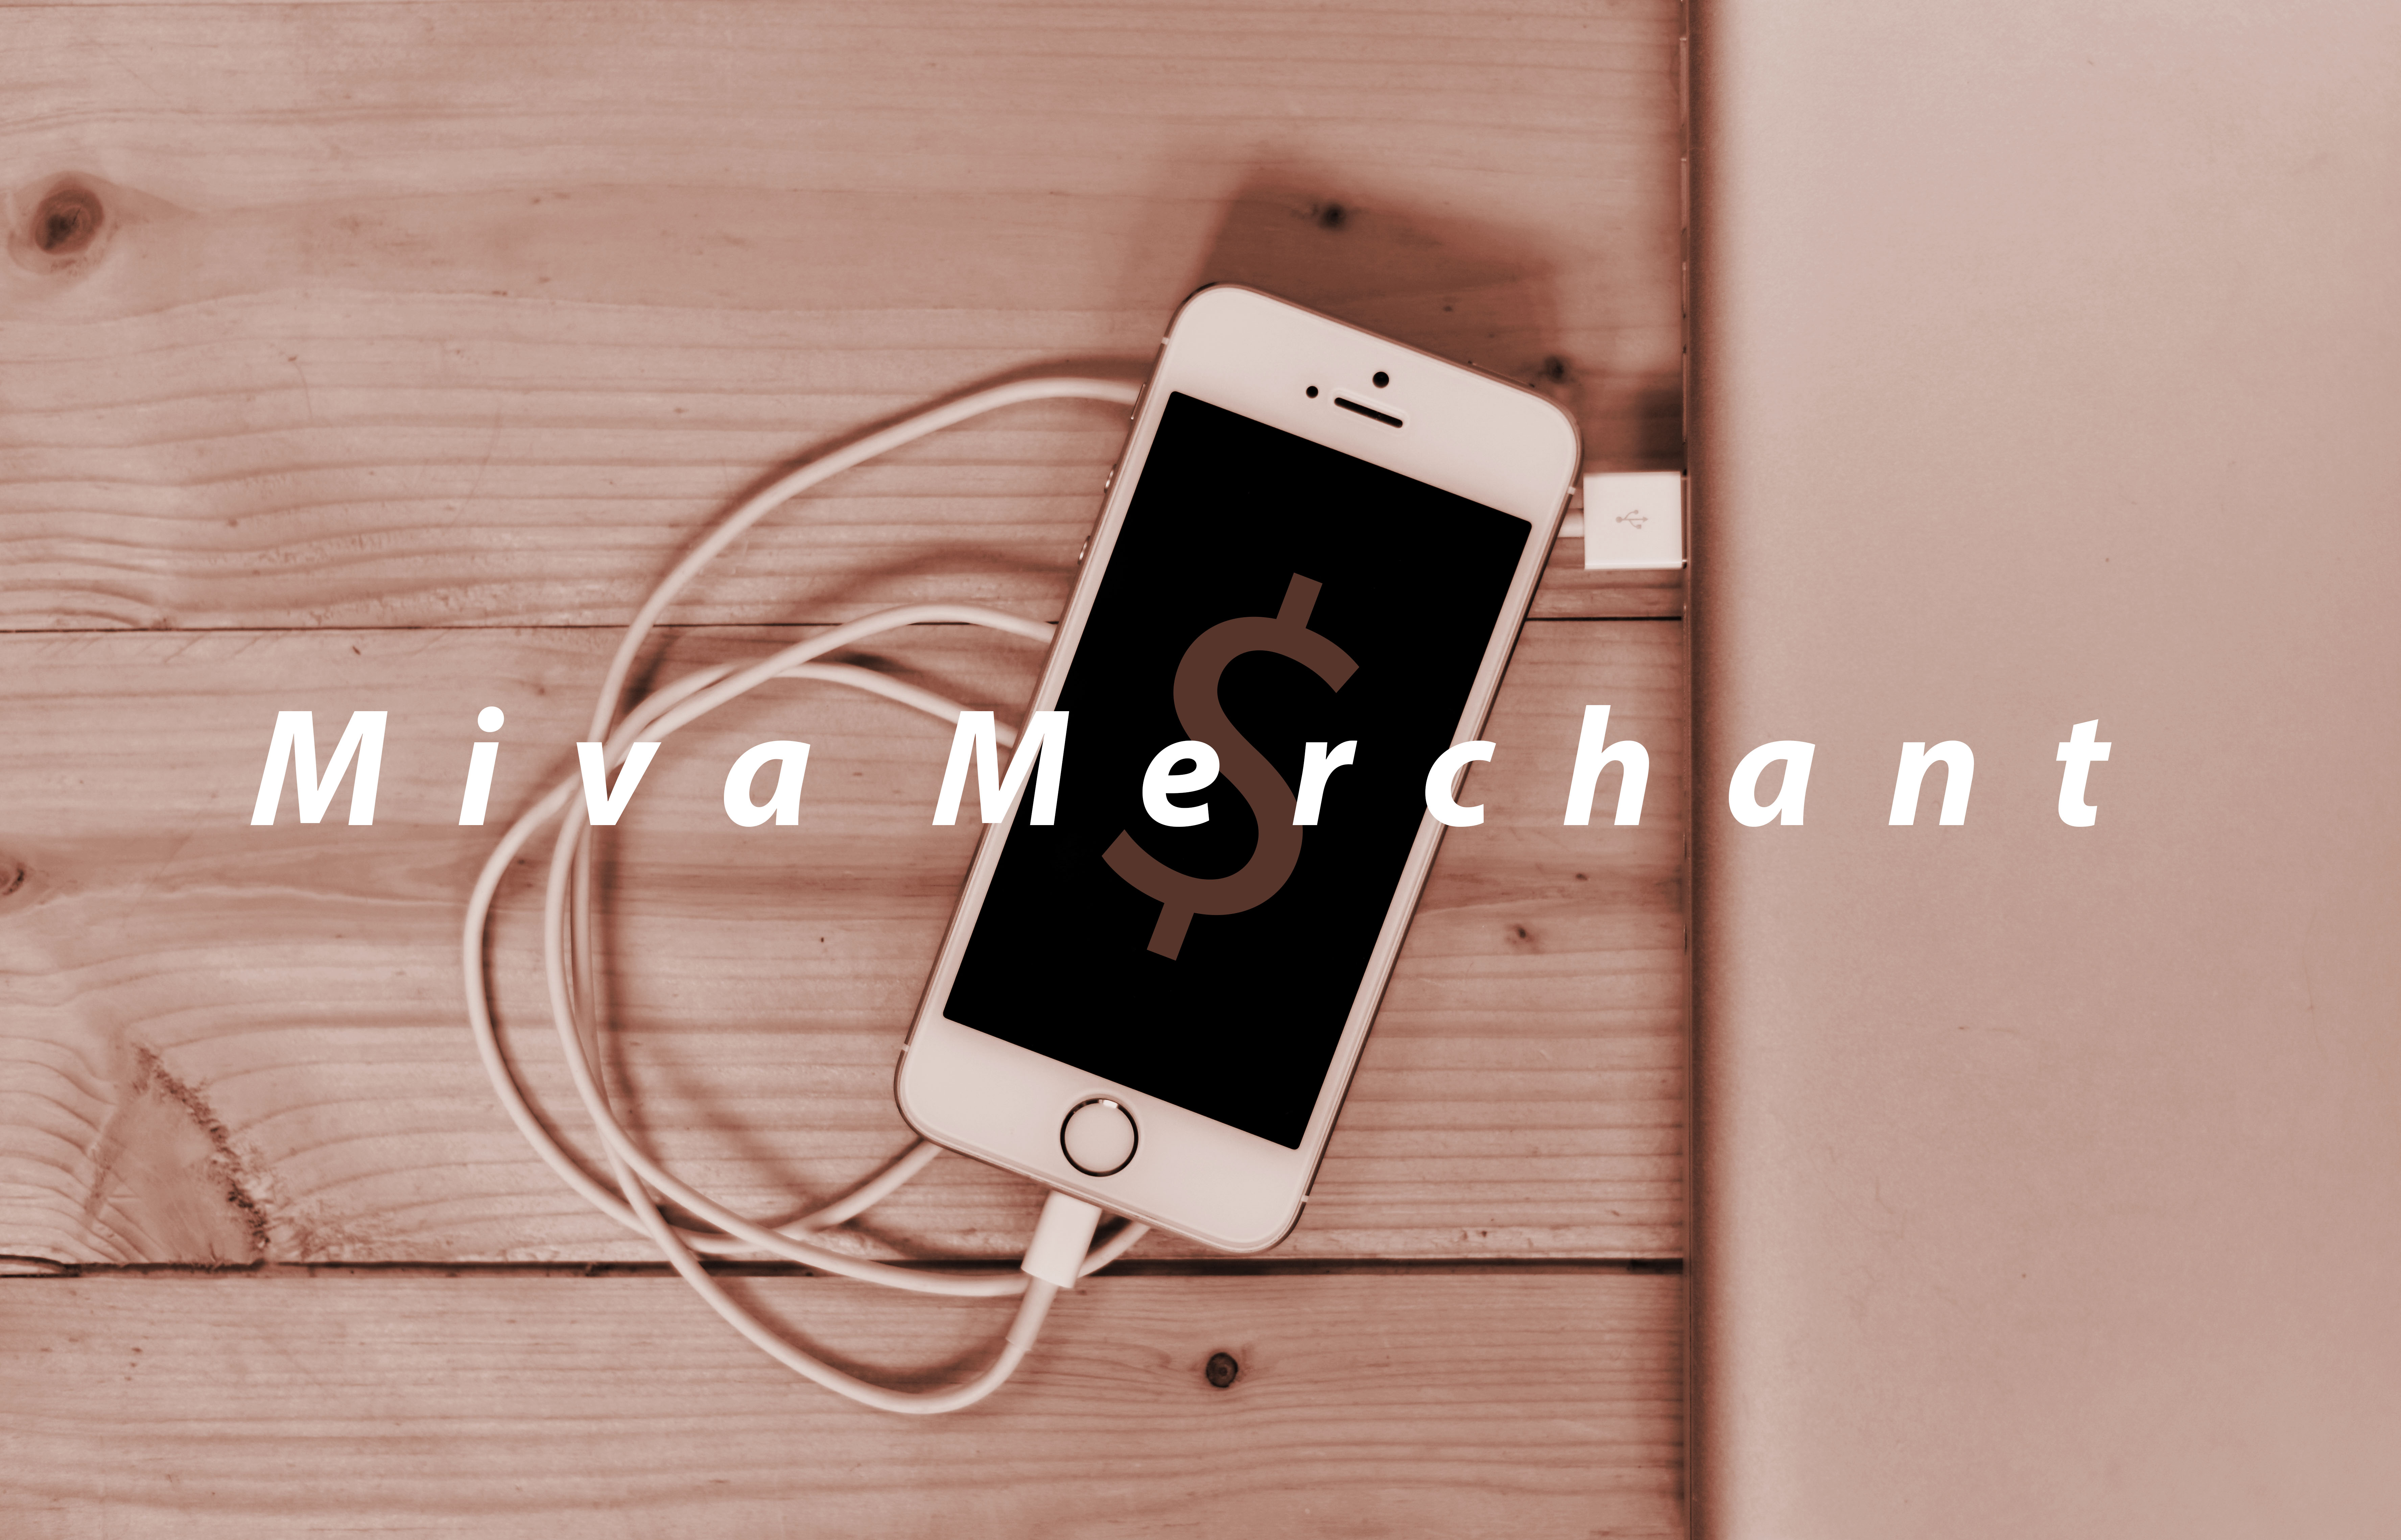 Iphone Plugged Into The Wall WIth Miva Merchant Text Overlaid Over The Image.